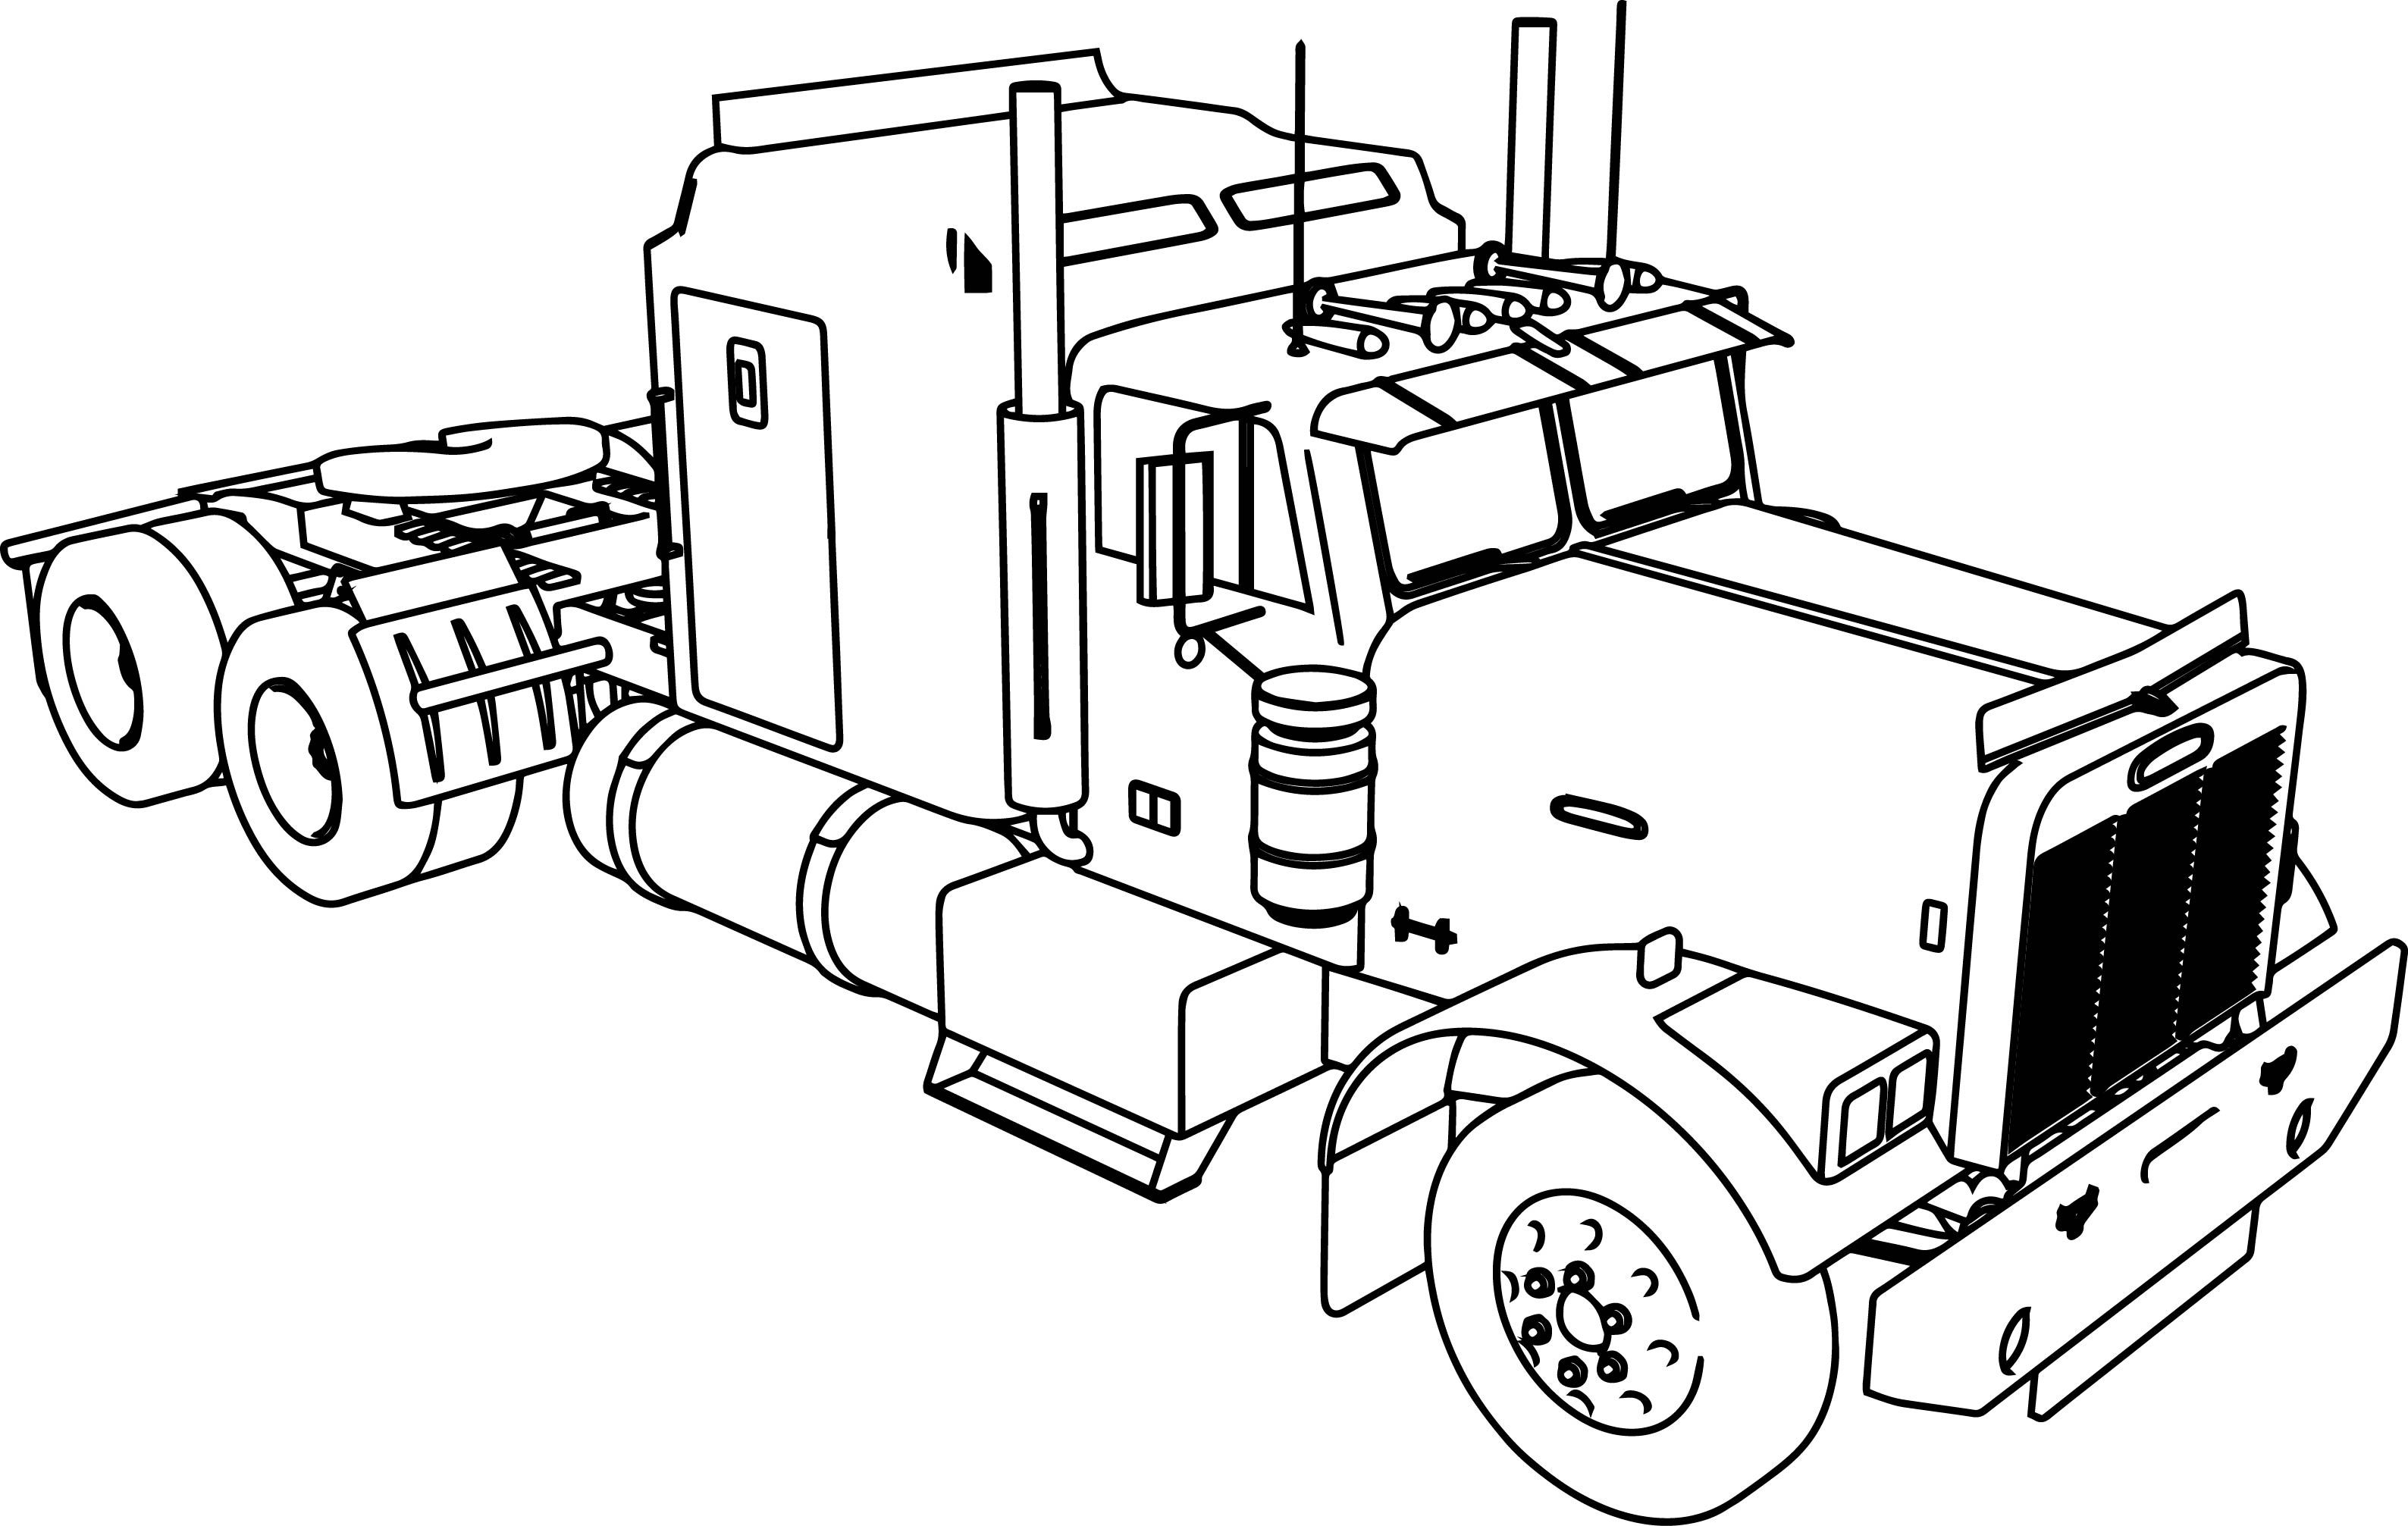 horse trailer coloring pages tractor trailer drawing at getdrawings free download horse pages trailer coloring